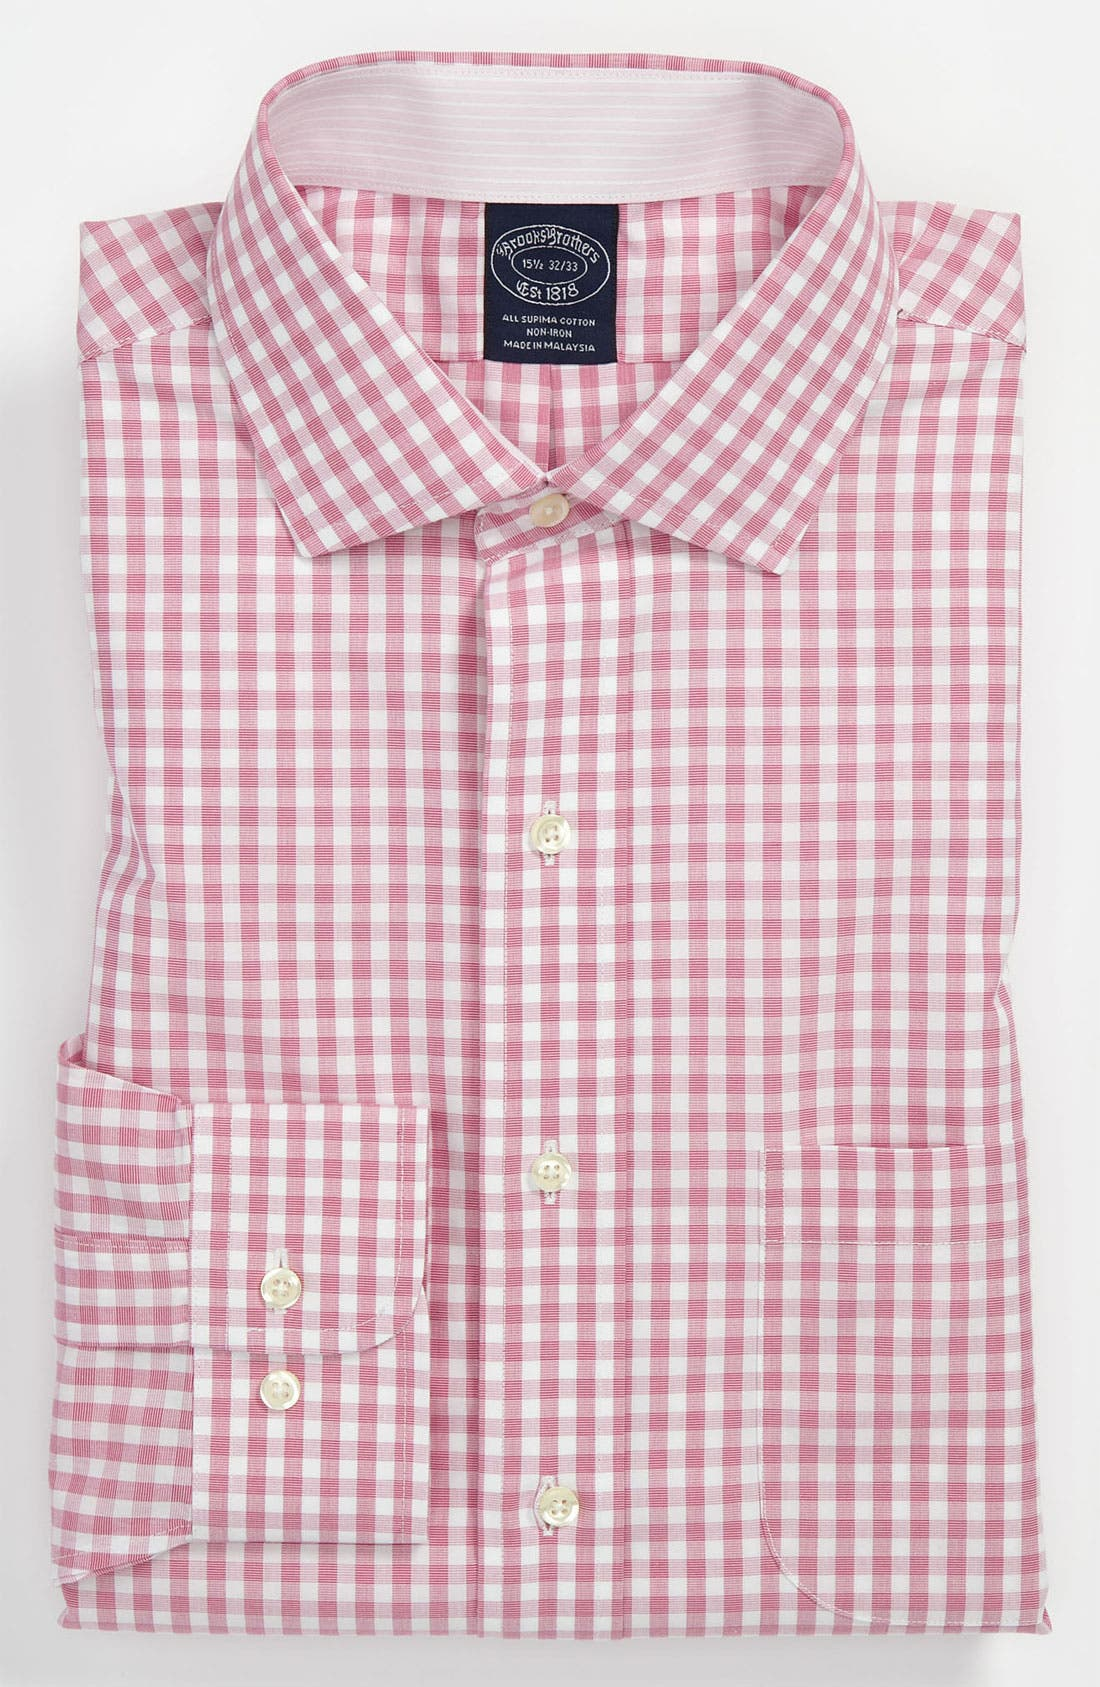 Main Image - Brooks Brothers Slim Fit Non-Iron Dress Shirt (3 for $225)